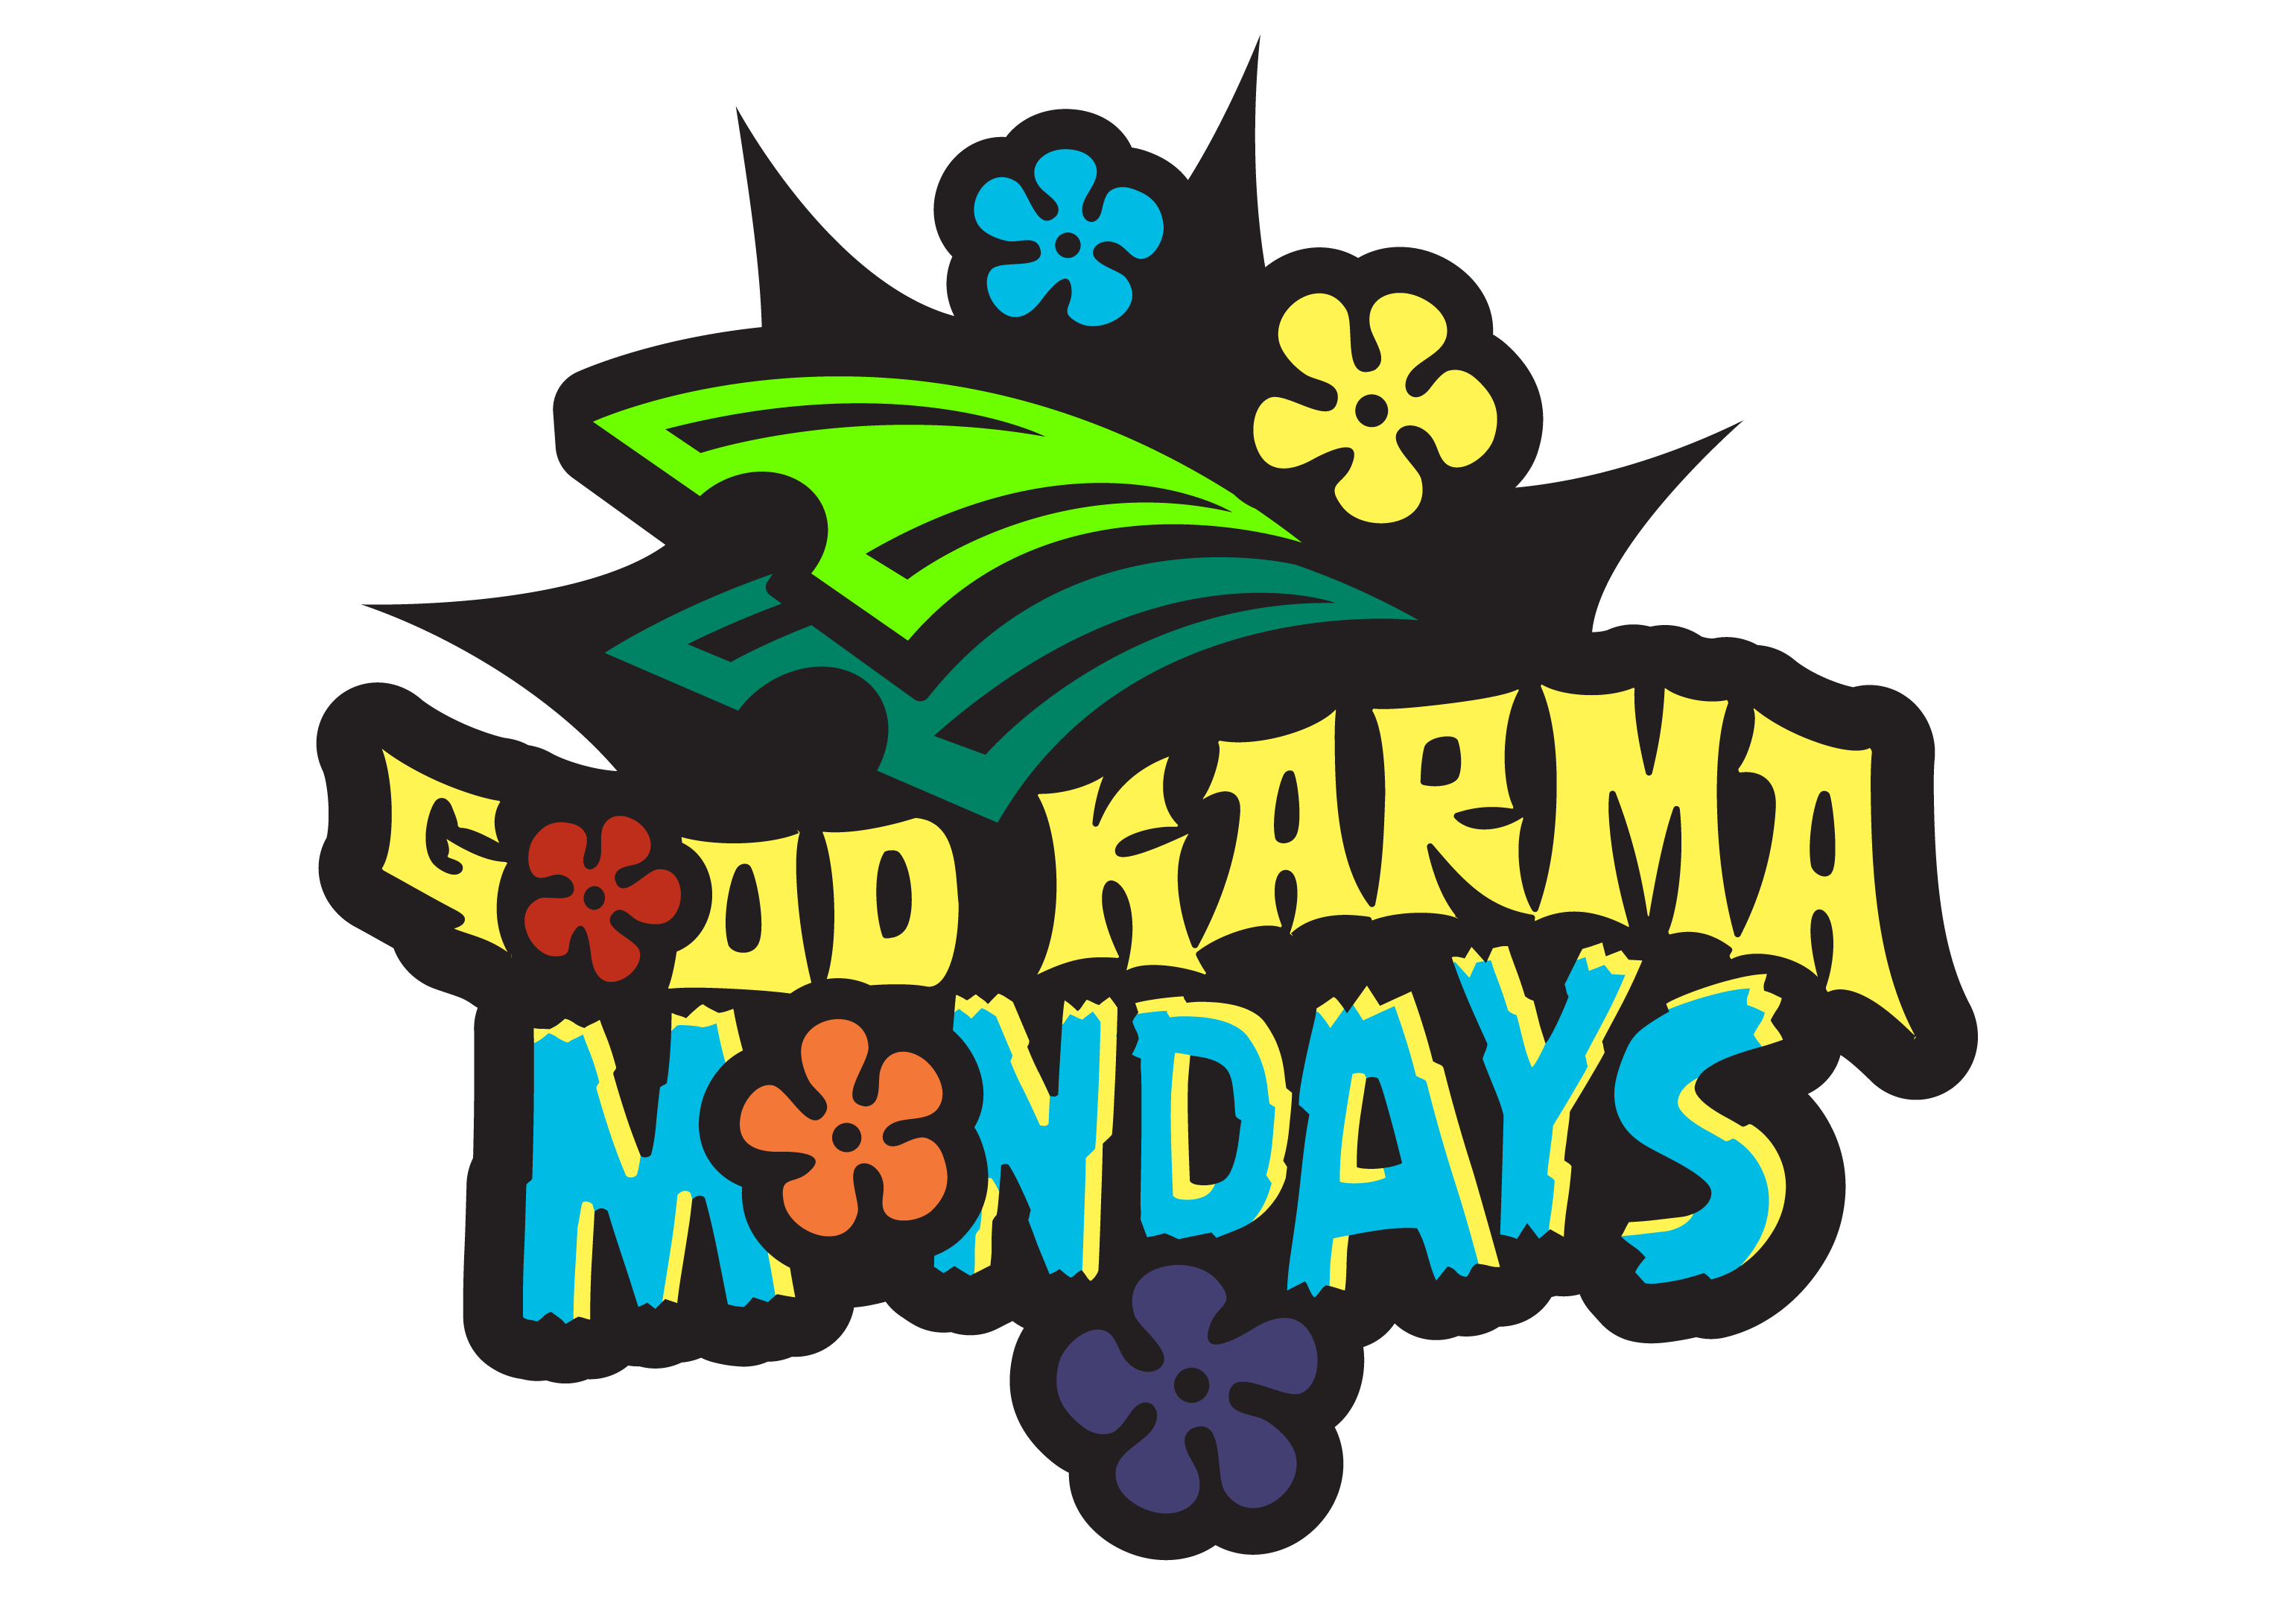 Good Karma Monday